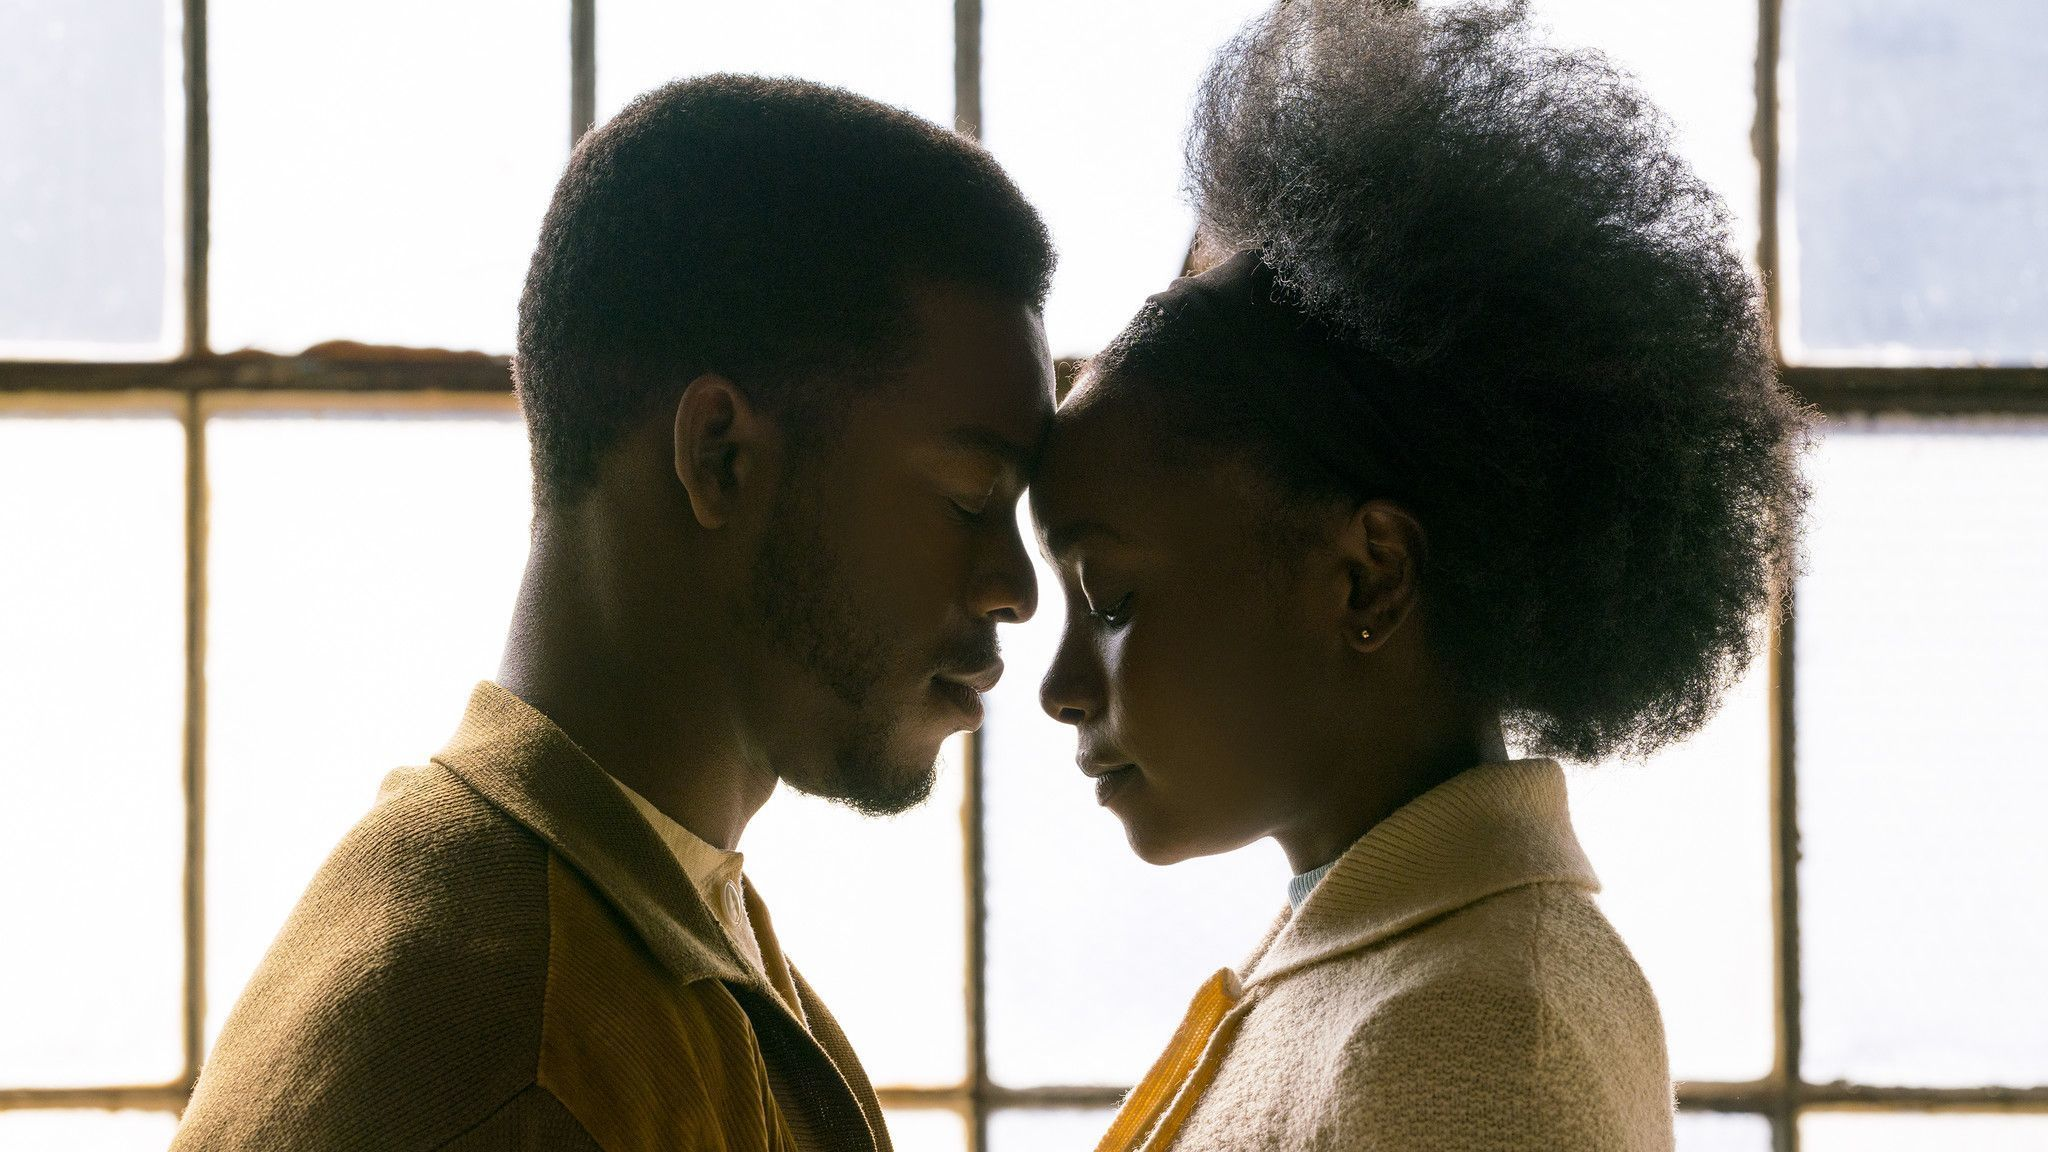 New video: 'If Beale Street Could Talk' is Barry Jenkins' bold adaptation of James Baldwin's powerful novel